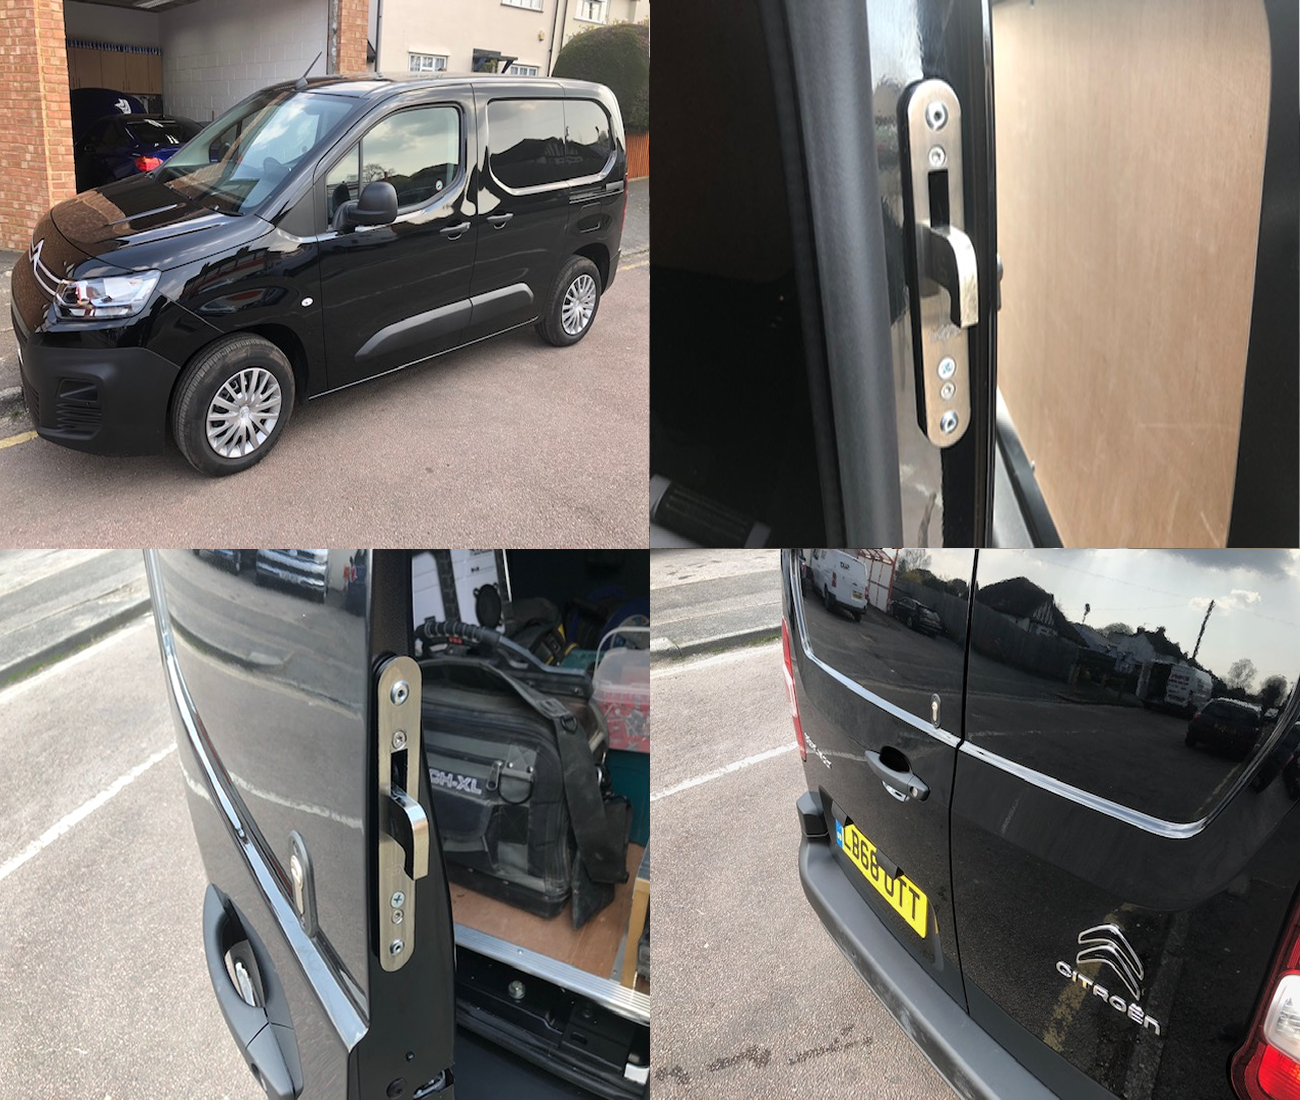 Citroen Berlingo 2018> Rear Van Security Hooklock Deadlock Kit product picture